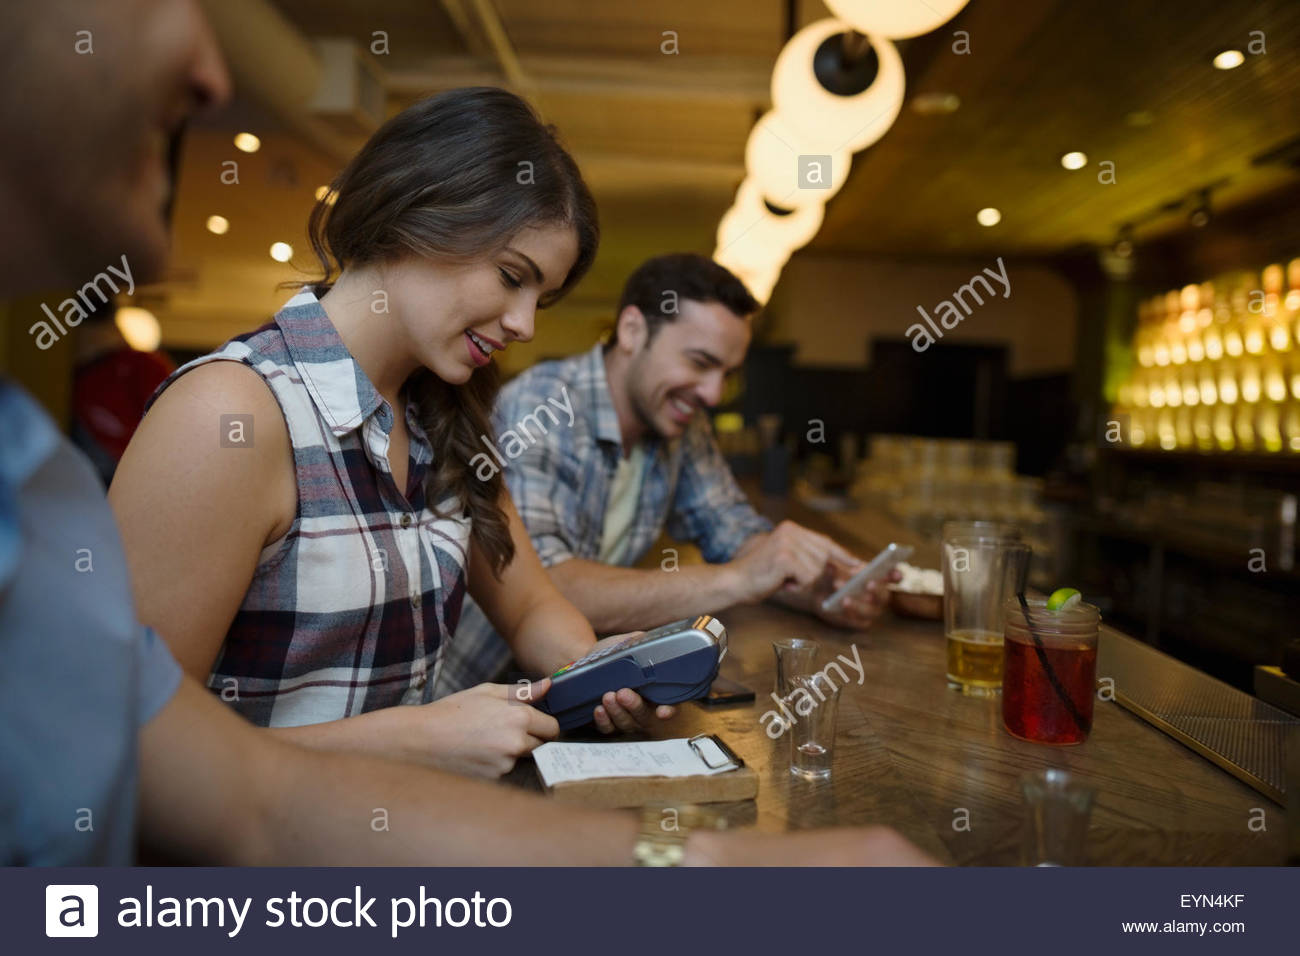 Friends paying for bar bill at bowling alley - Stock Image